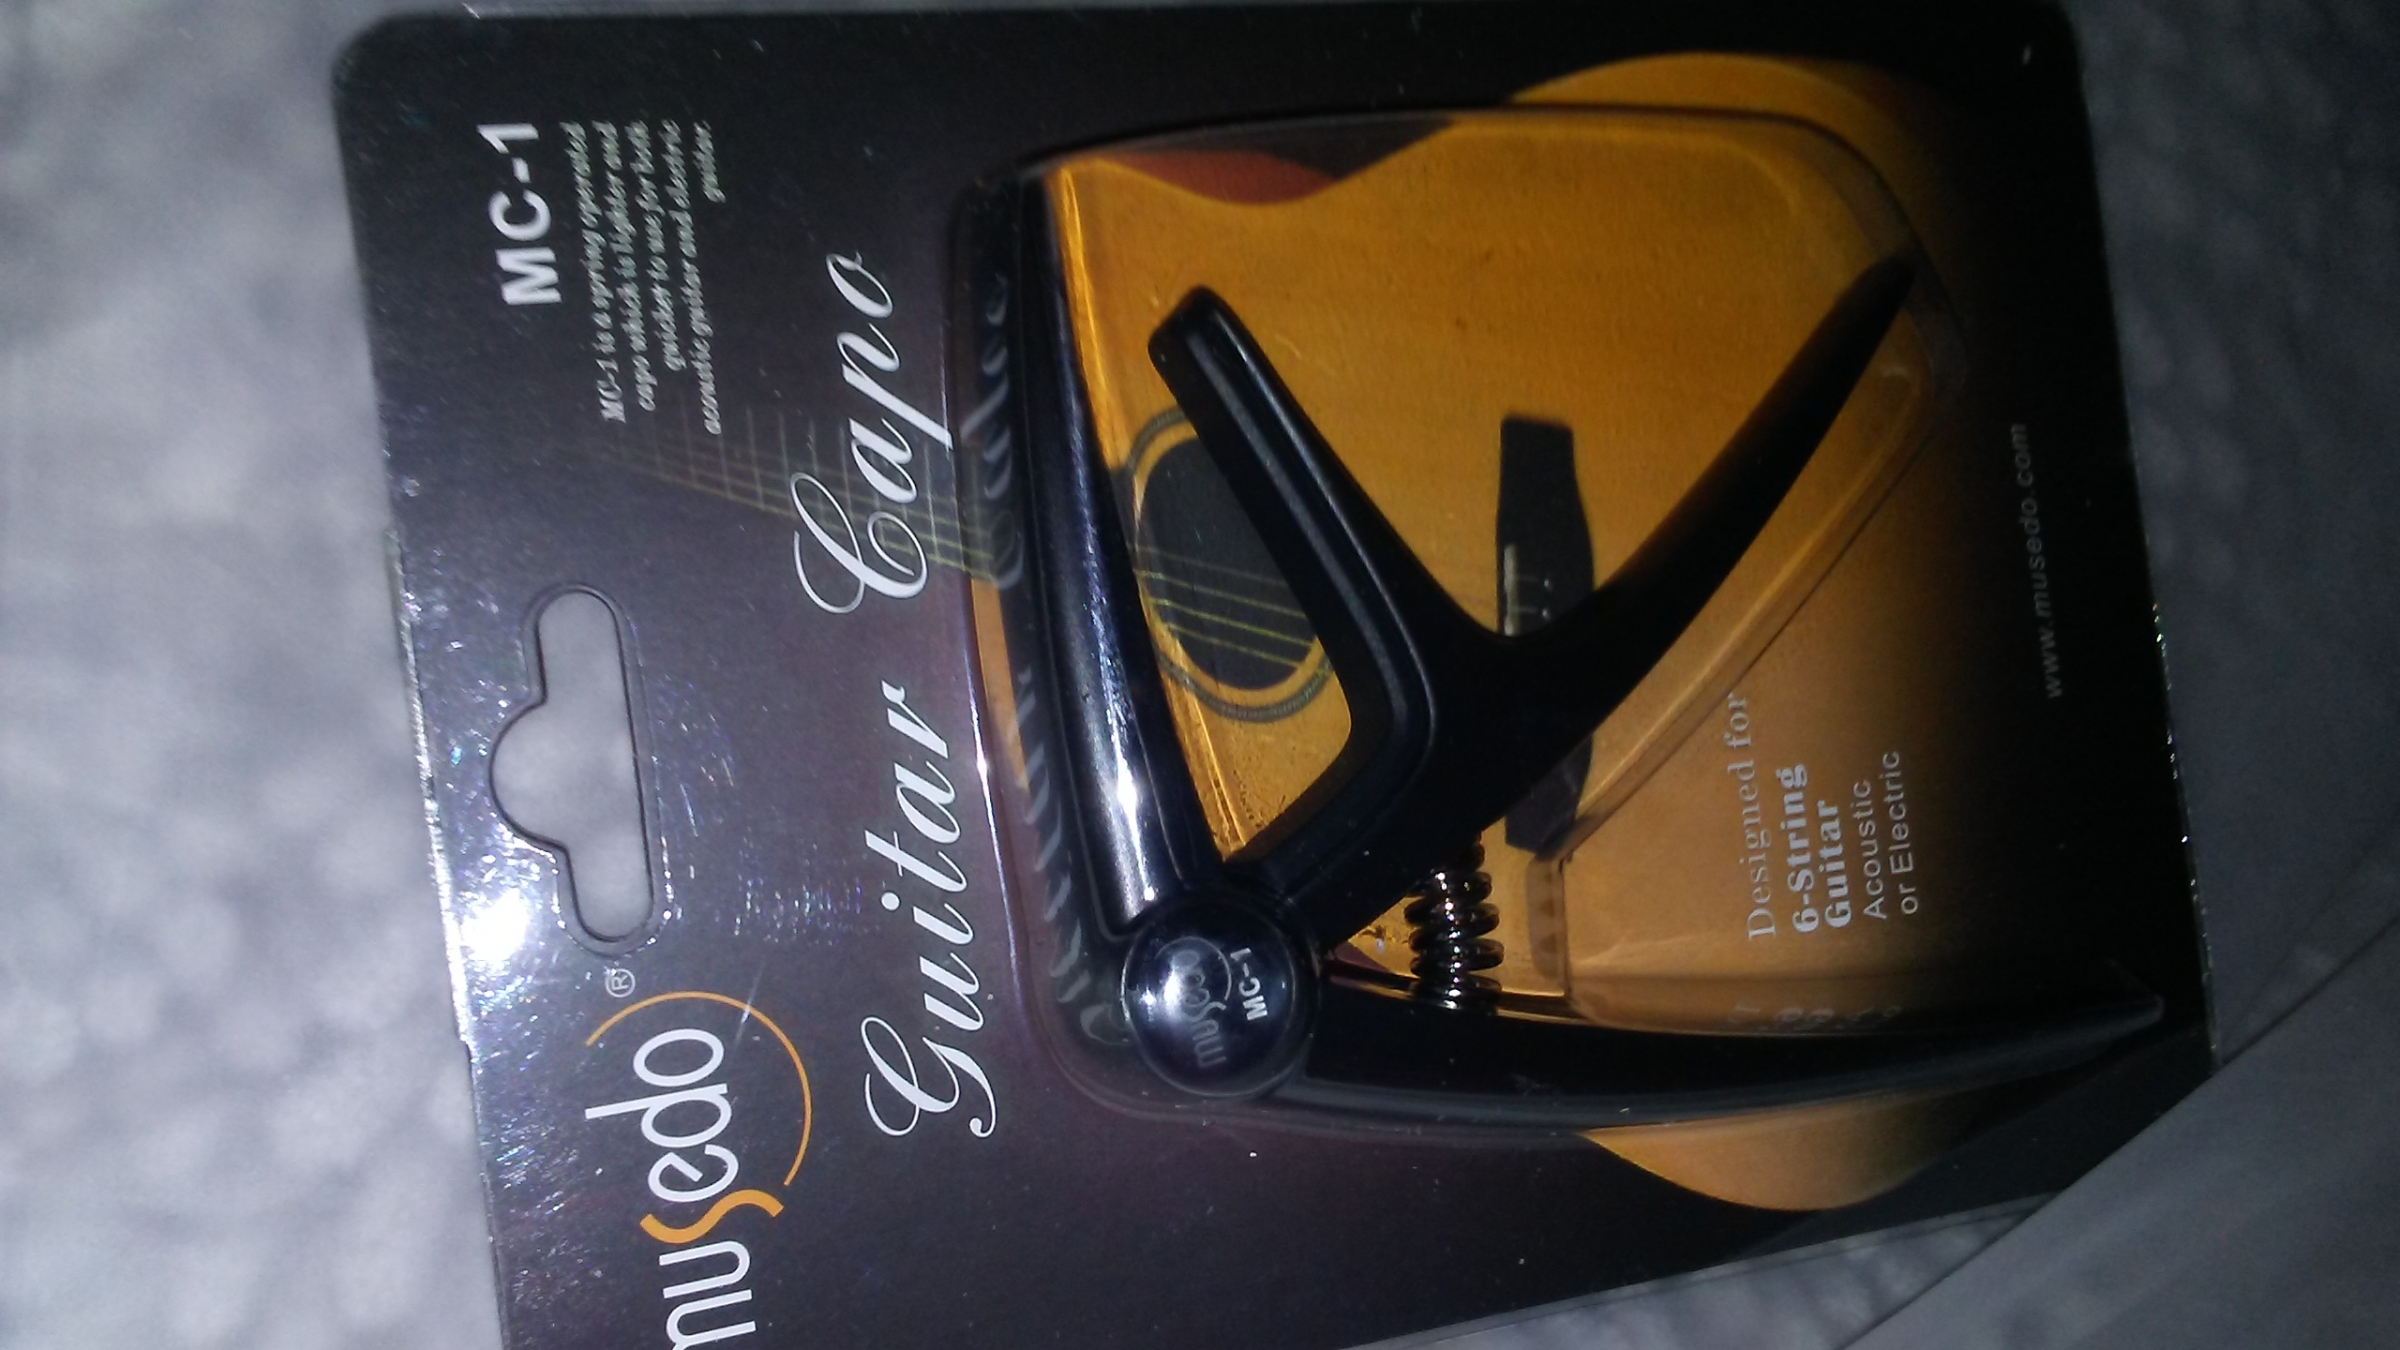 I bought this capo and tried it out on several of our guitars.